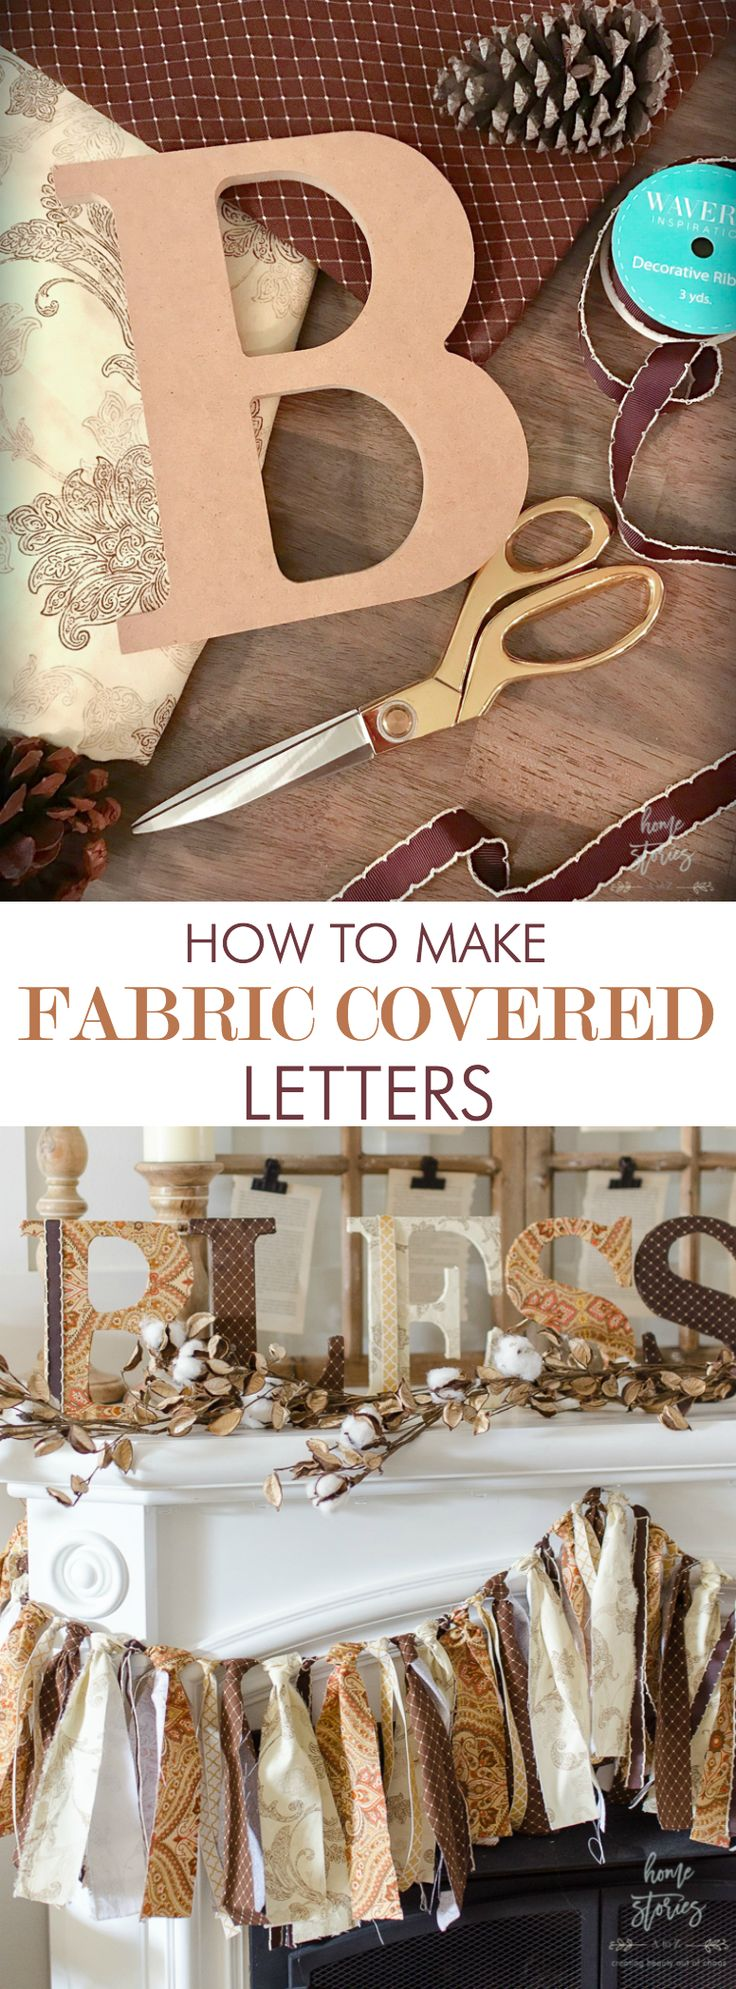 Learn how to make fabric covered letters with this easy no sew, step-by-step pictorial tutorial.  via @homestoriesatoz ad waverlyinspirations